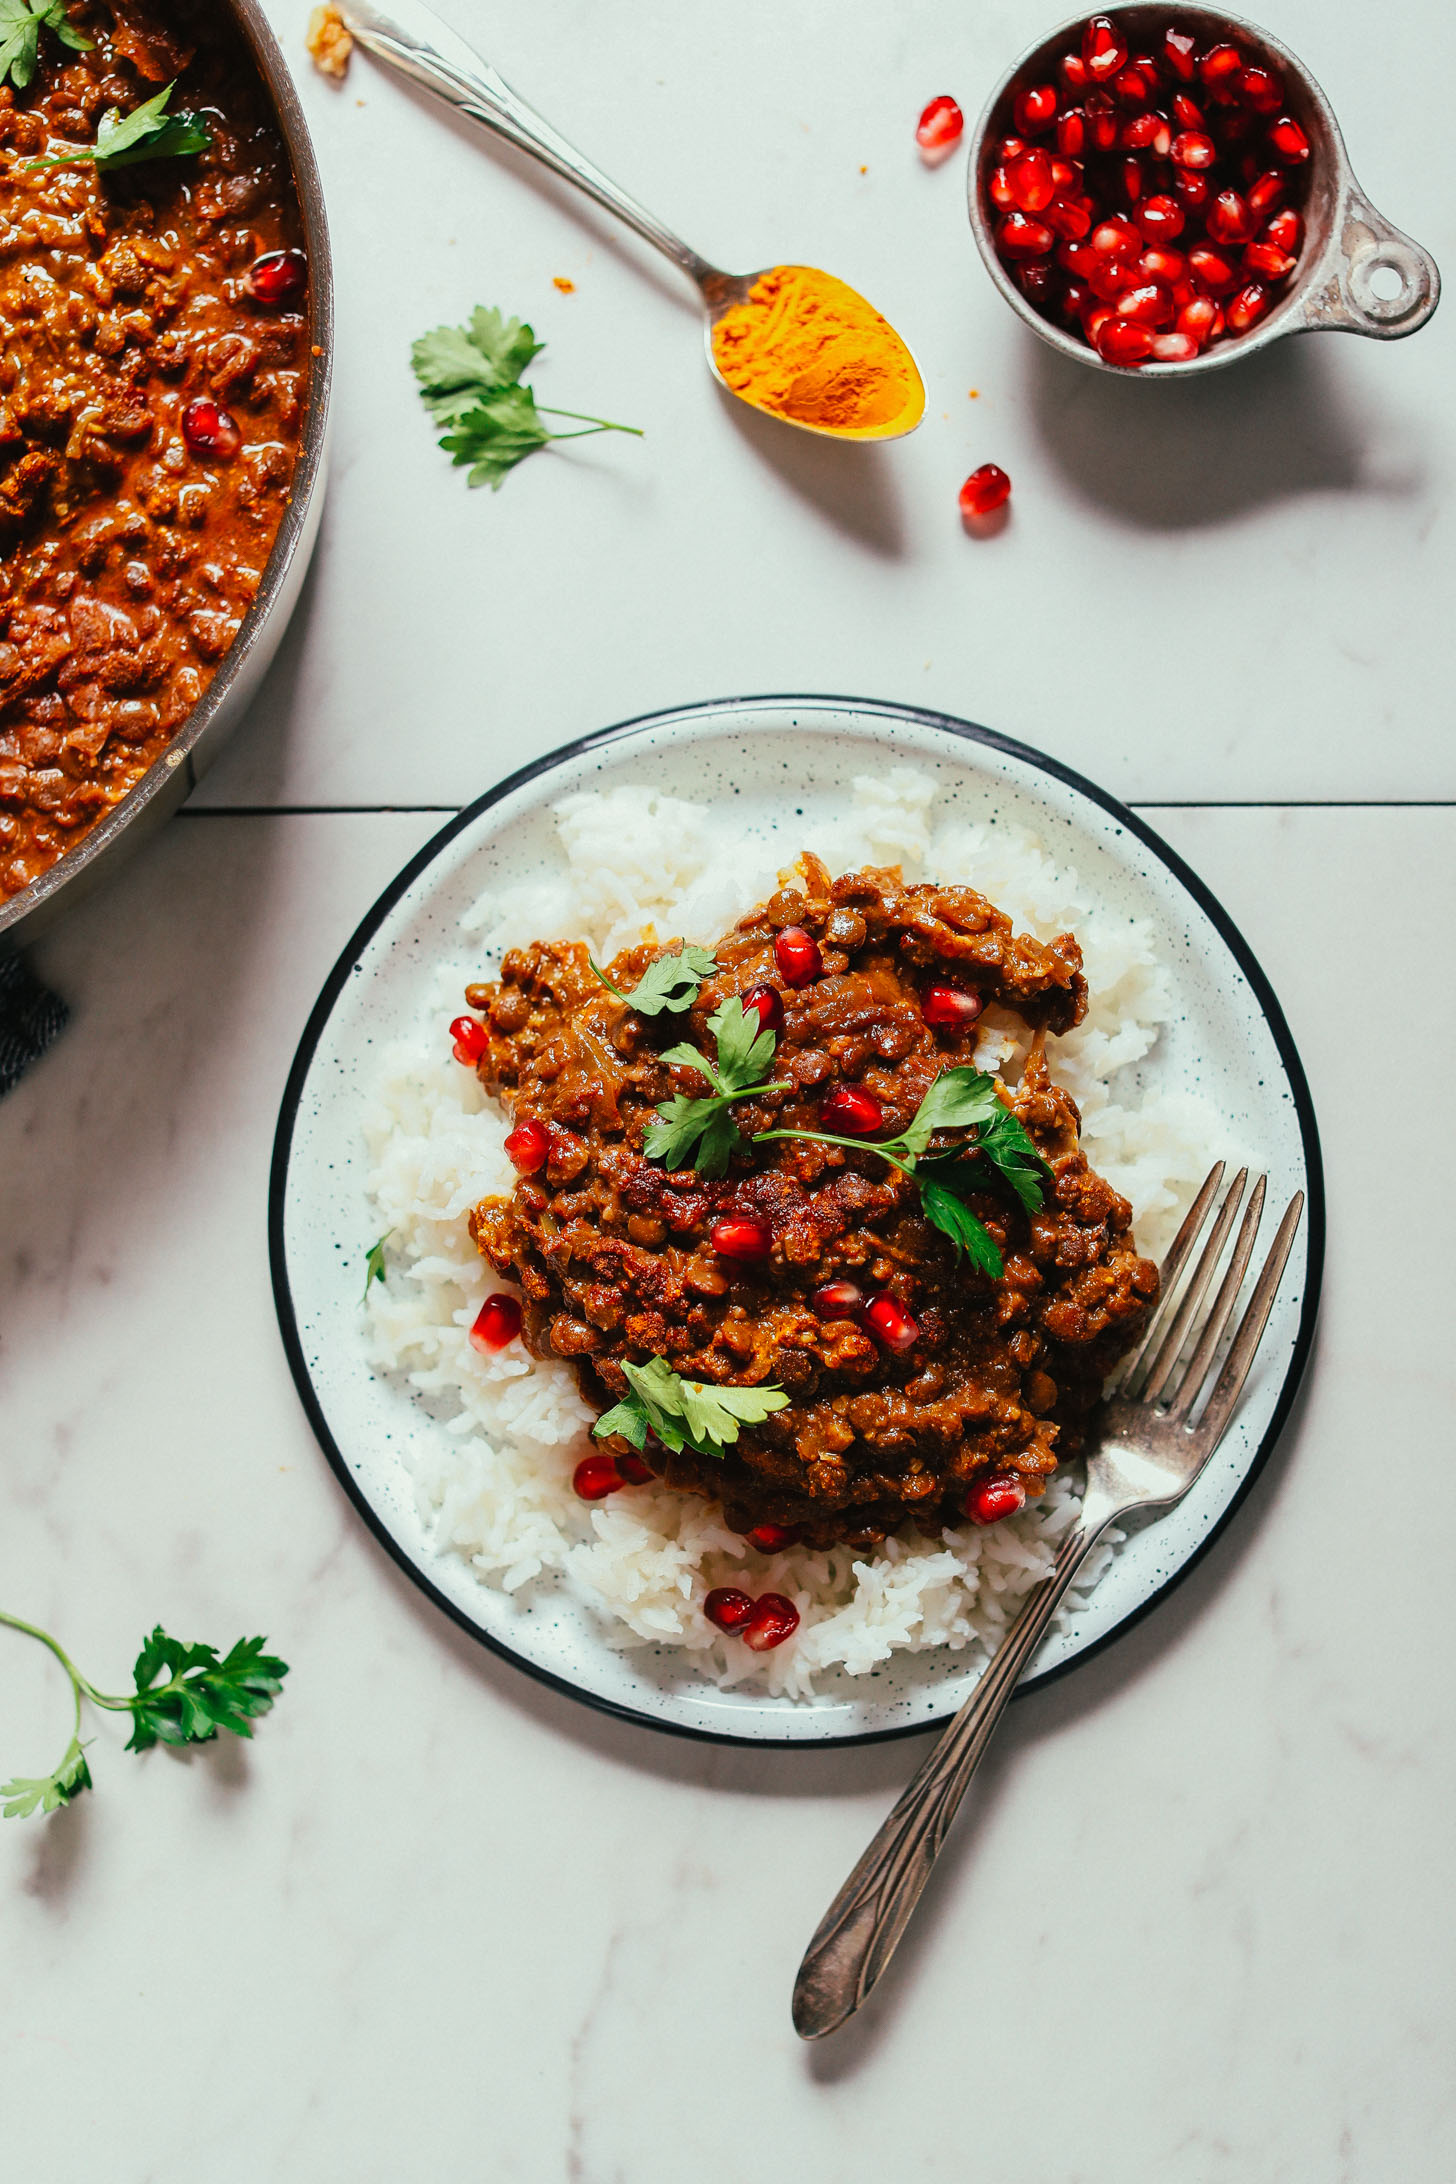 Plate of Lentil Fesenjan over rice for a hearty gluten-free vegan meal